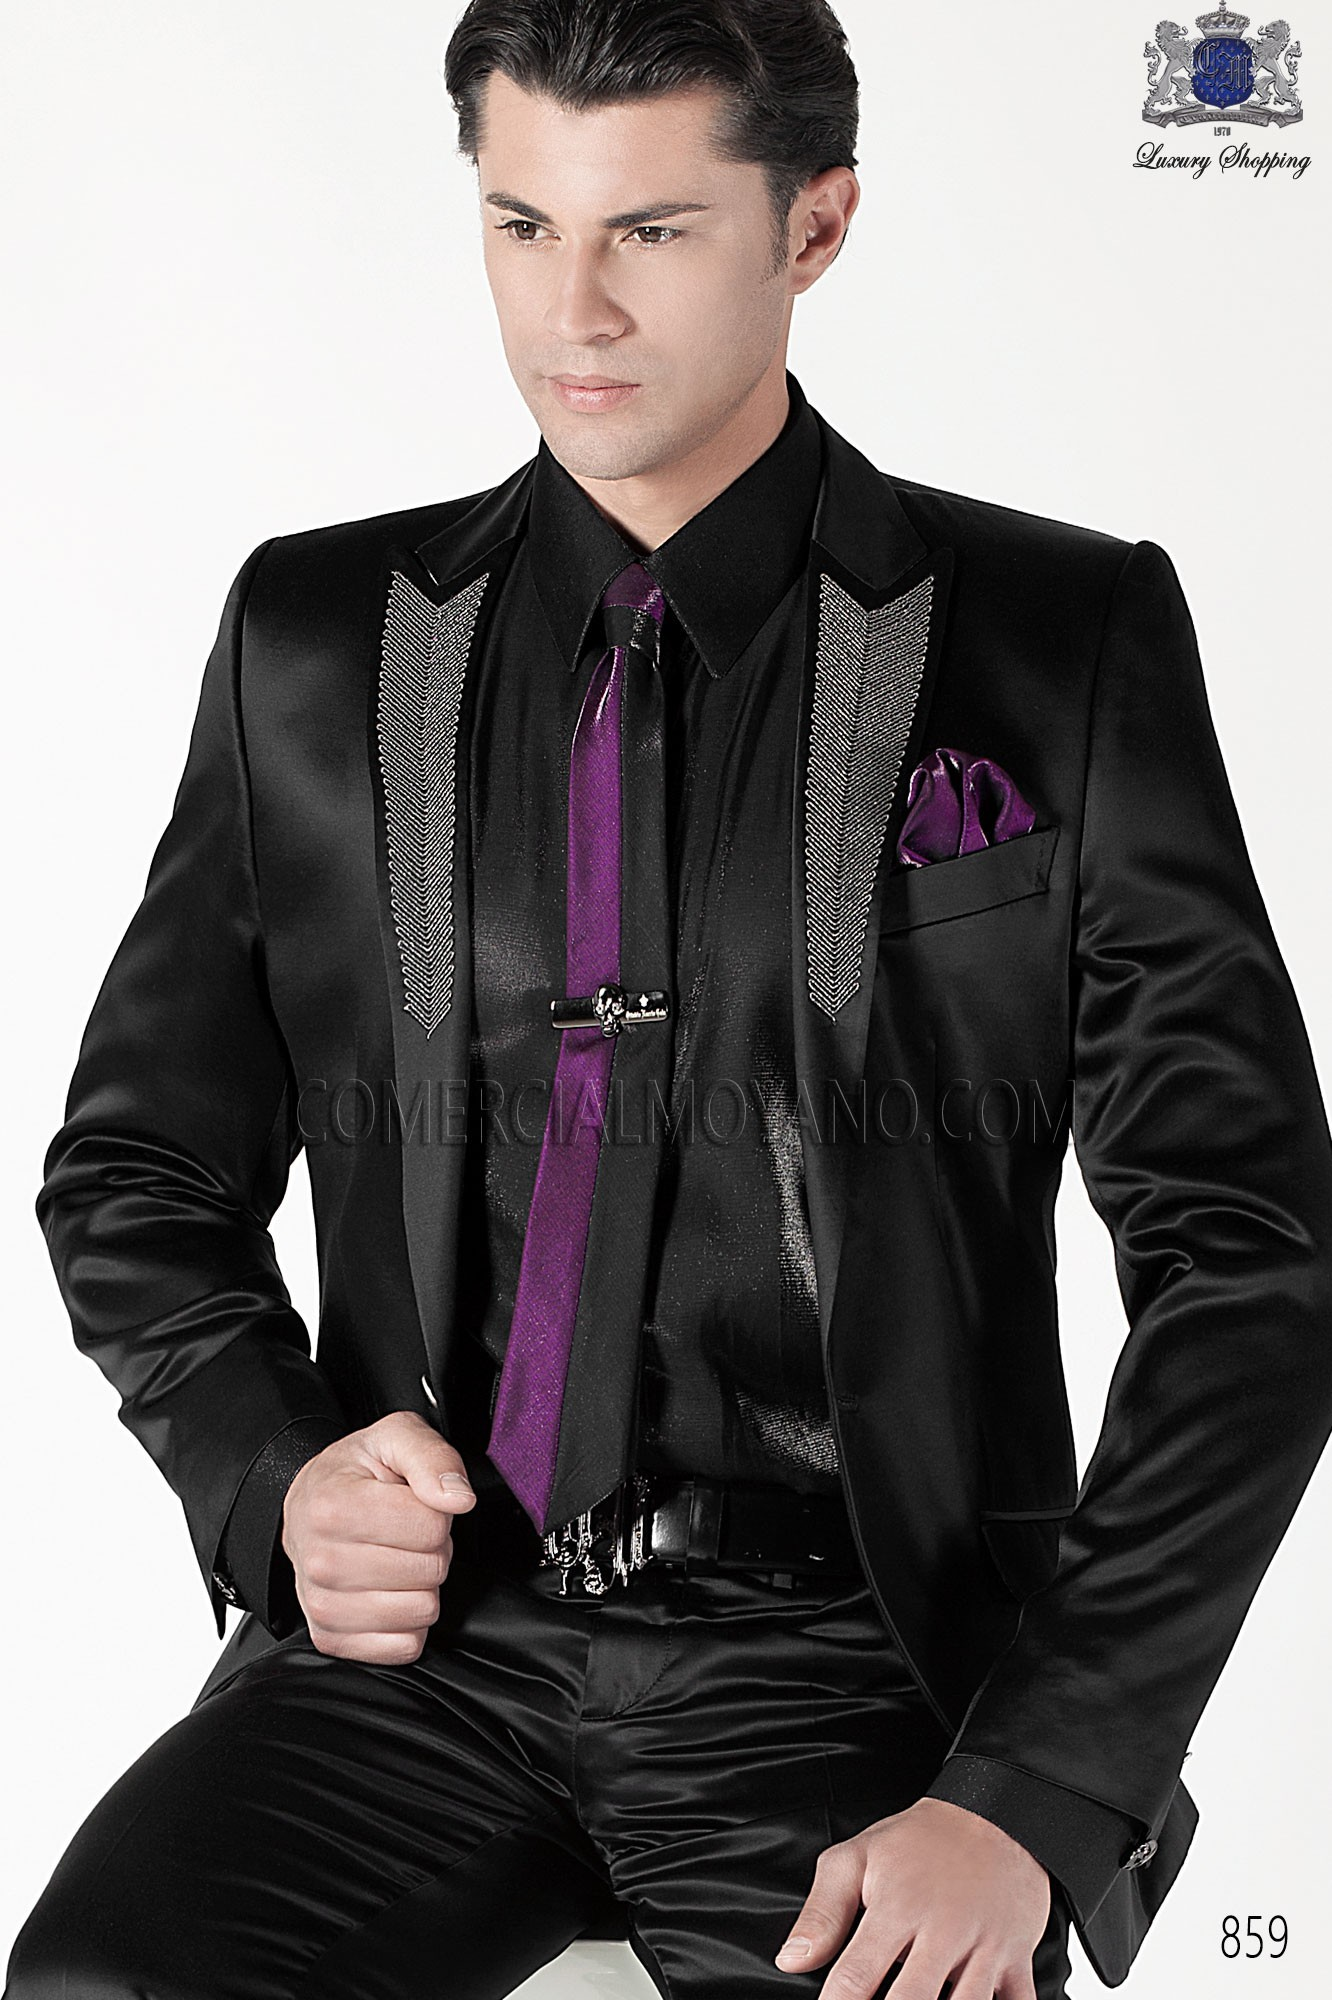 Italian emotion black men wedding suit, model: 859 Ottavio Nuccio Gala 2017 Emotion Collection